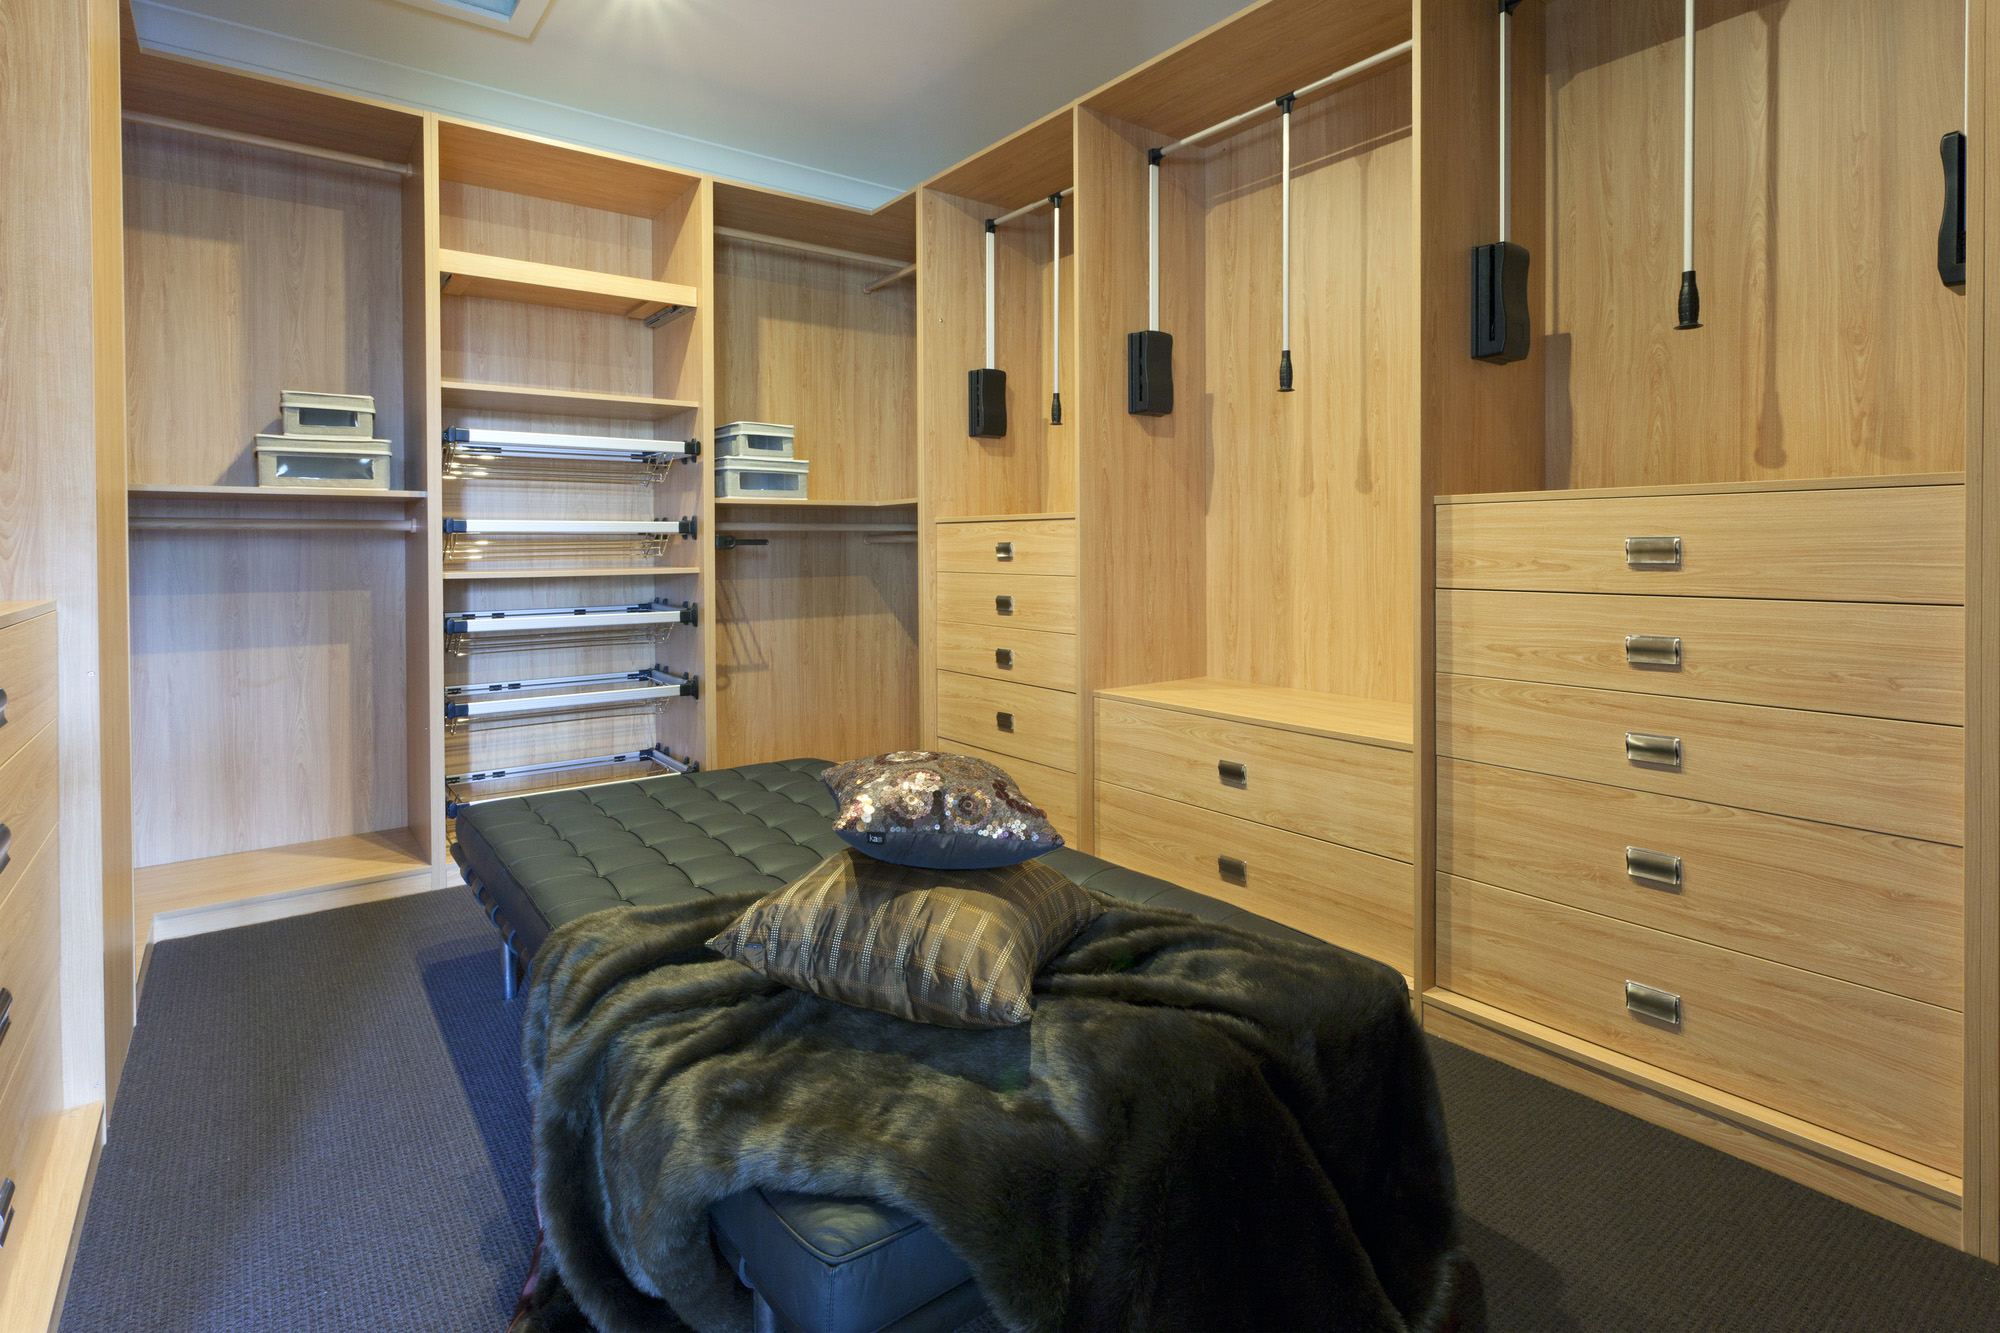 dressing room ideas, pull down wardrobe rail, wardrobe internal drawers